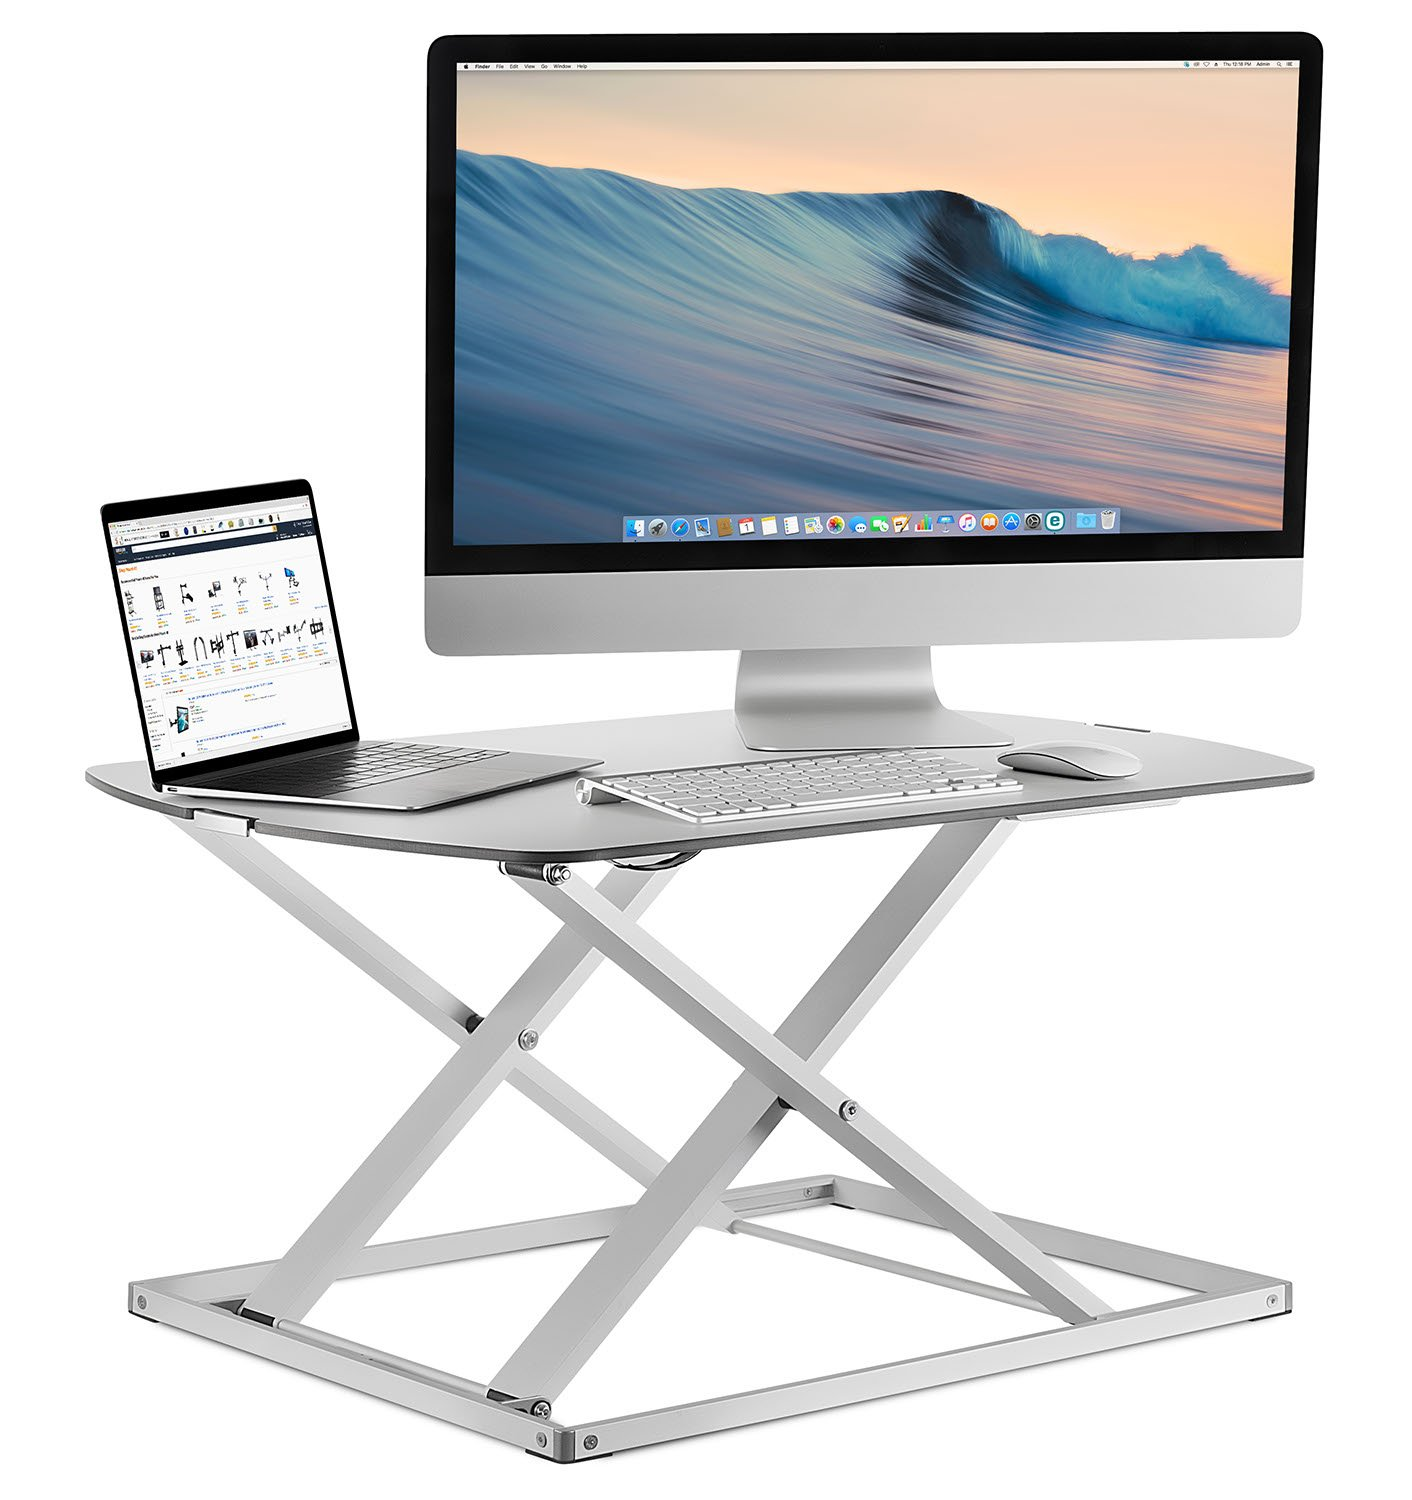 Mount-It! Standing Desk Ergonomic Height Adjustable Sit Stand Desk, 31x22 Inch Preassembled Stand-Up Desk Converter, Holds up to 22 Pounds, Large Surface MI-7928